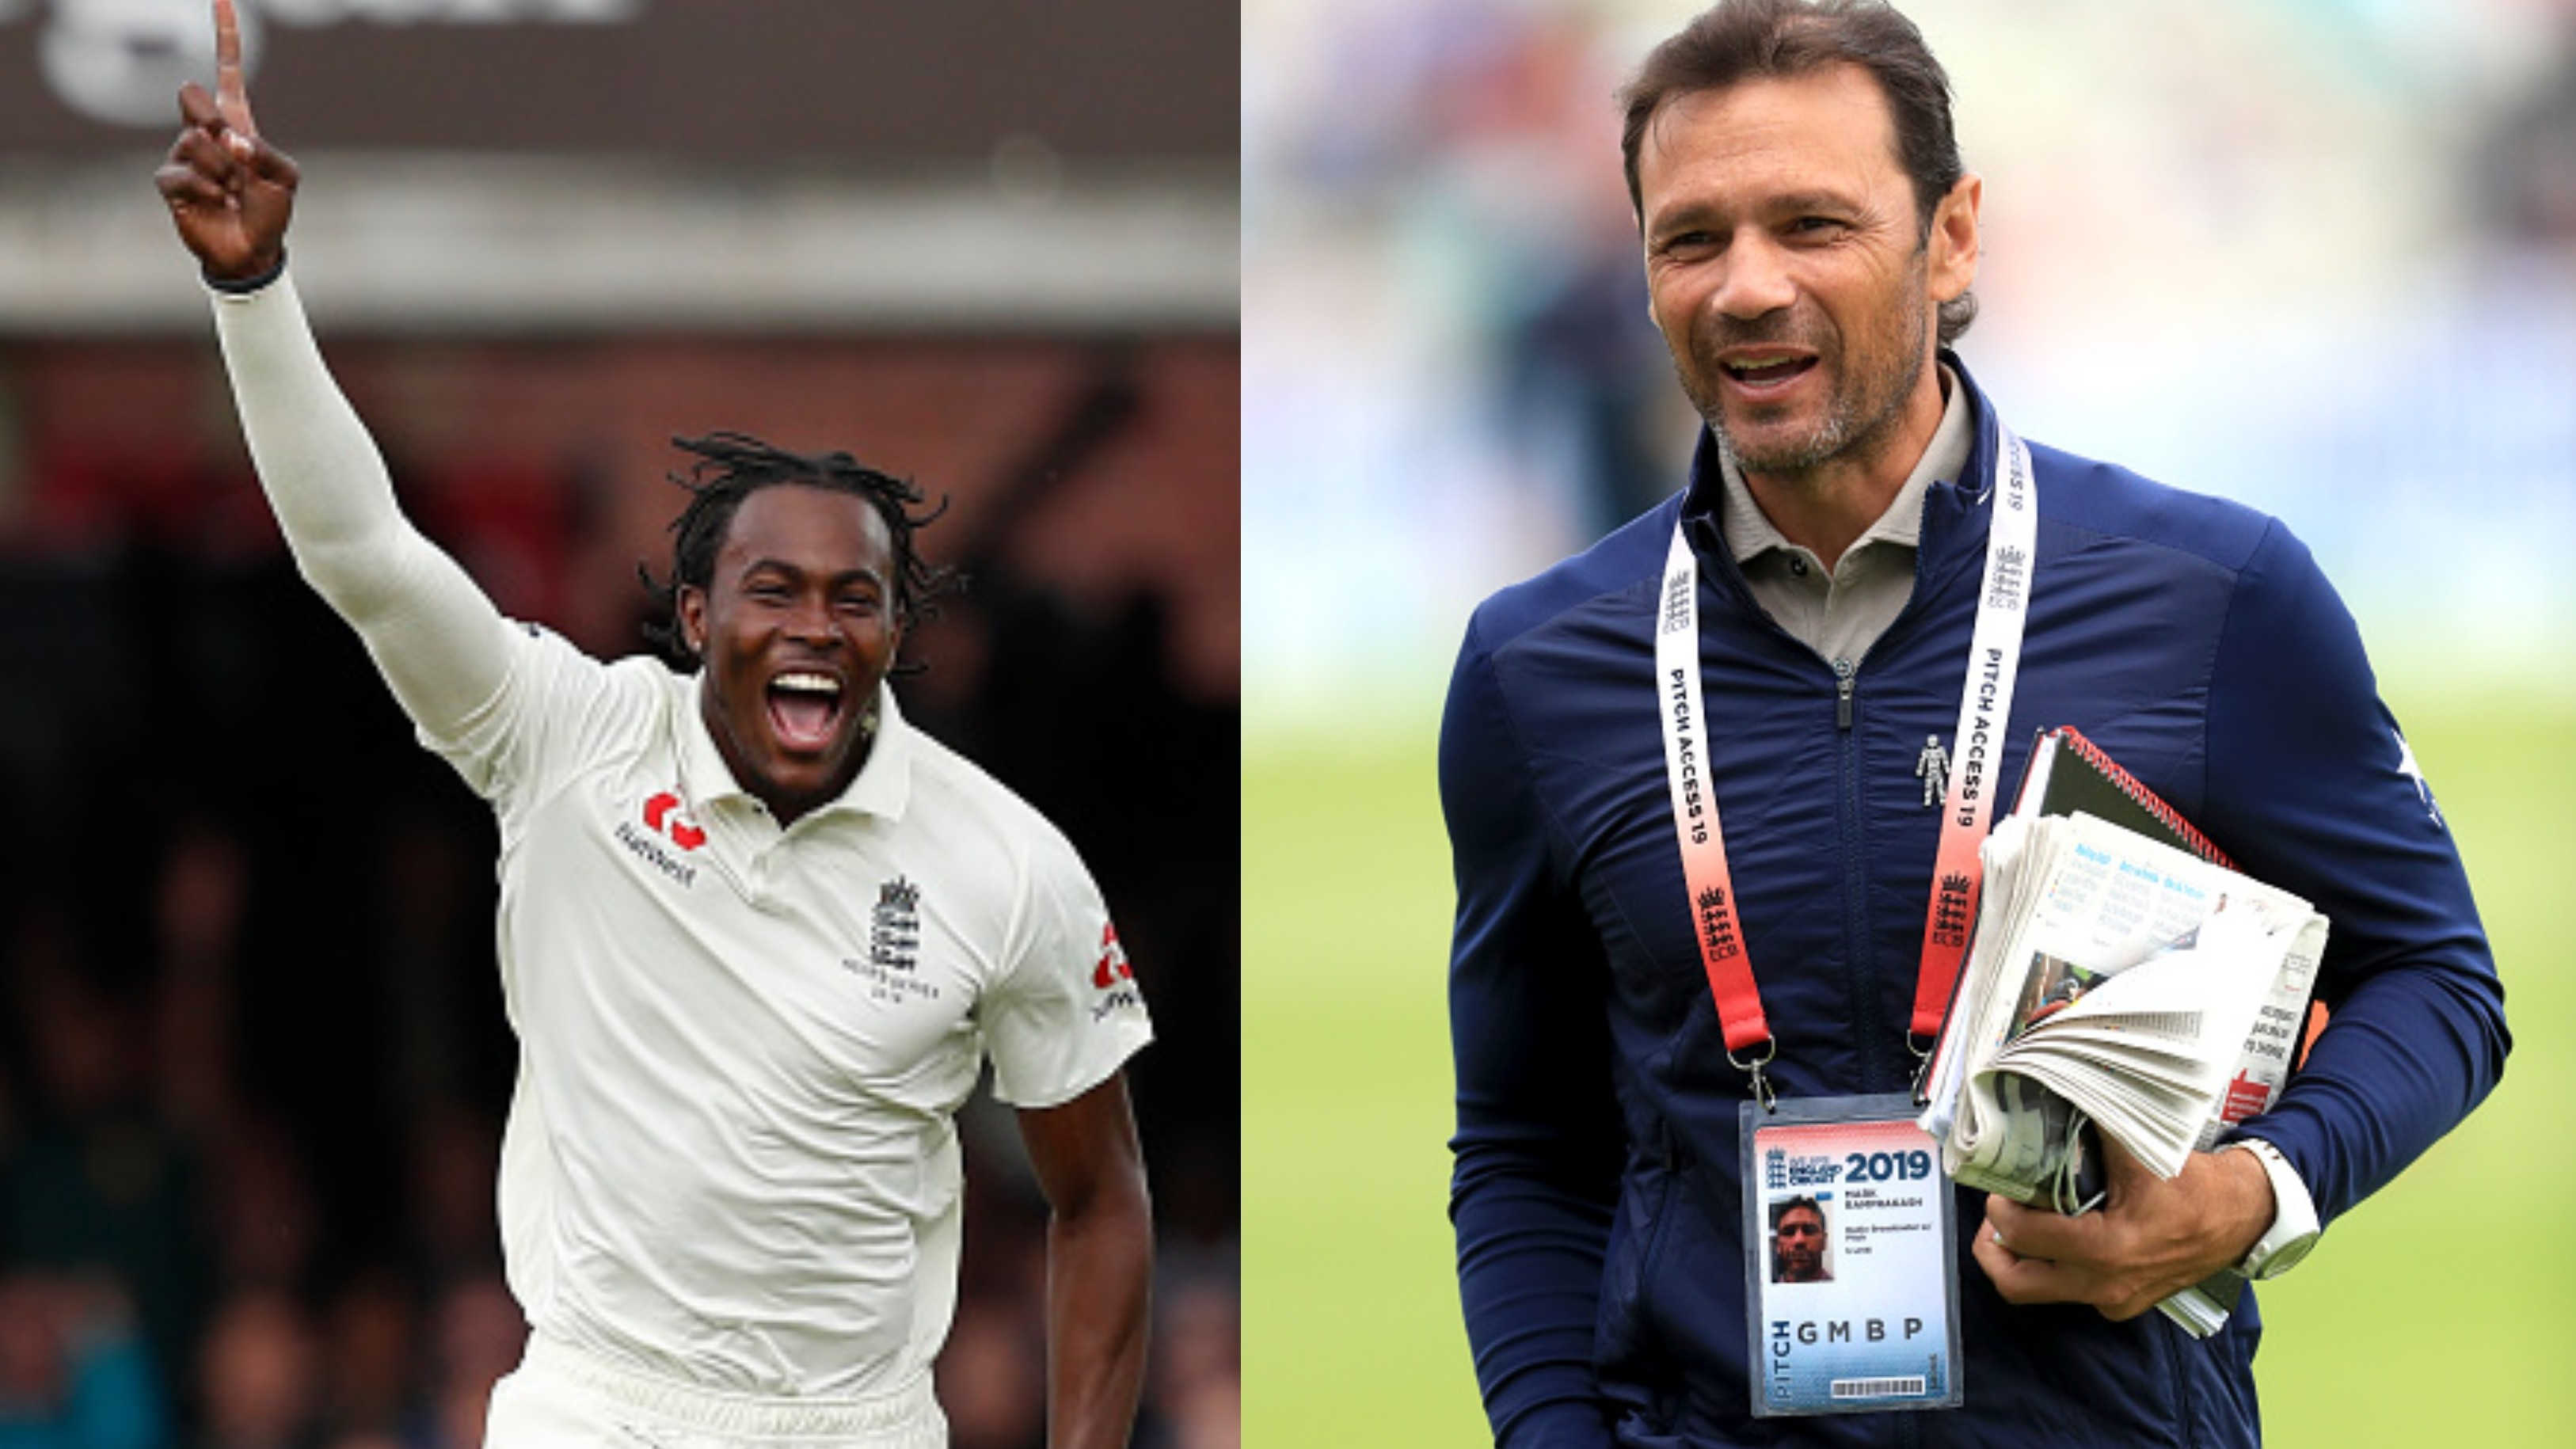 ASHES 2019: Mark Ramprakash explains how to deal with Jofra Archer's bouncers